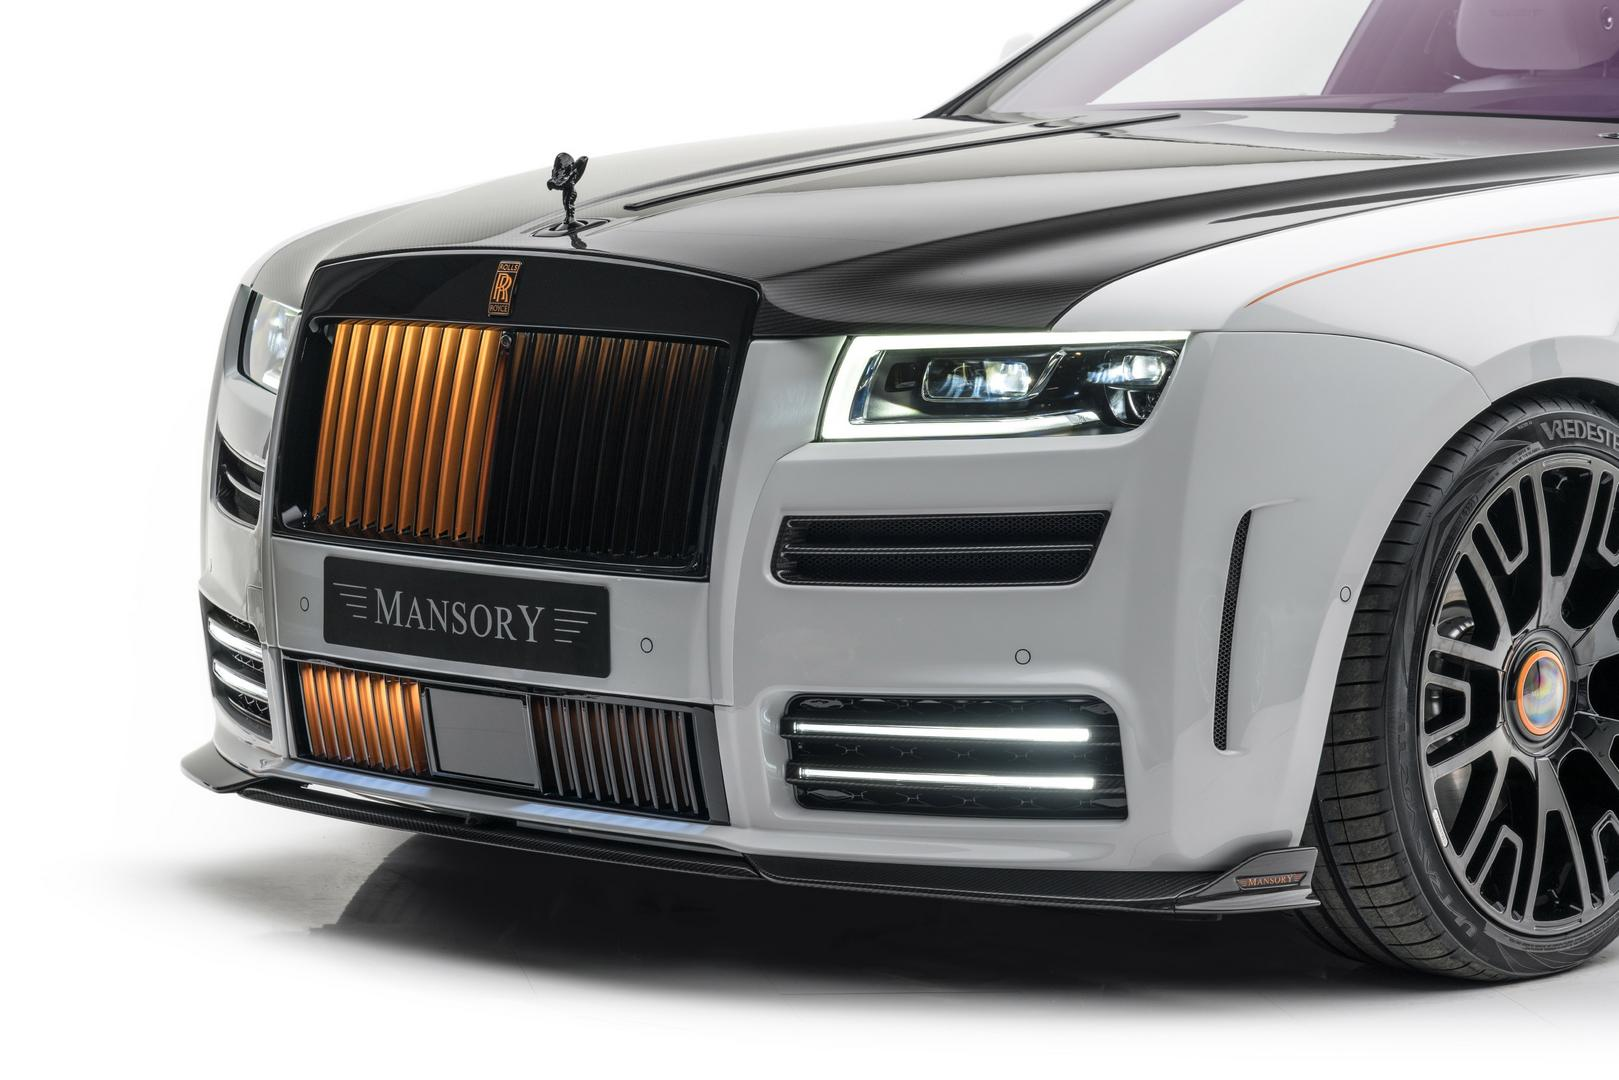 Mansory RR Ghost front lip